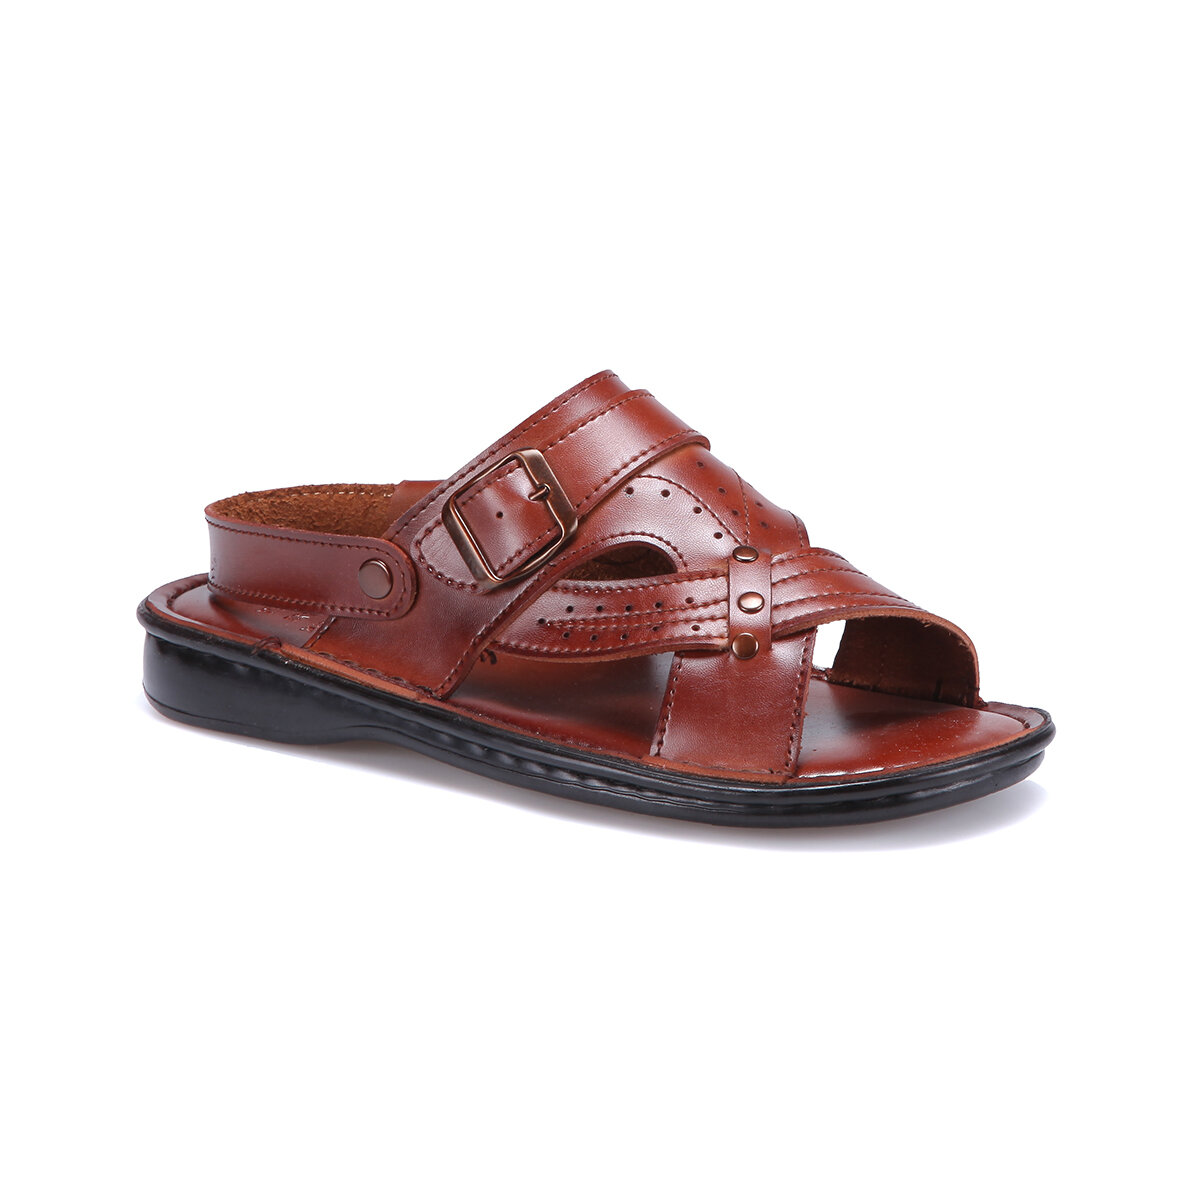 FLO 45 M 1625 Tan Male Sandals Flexall